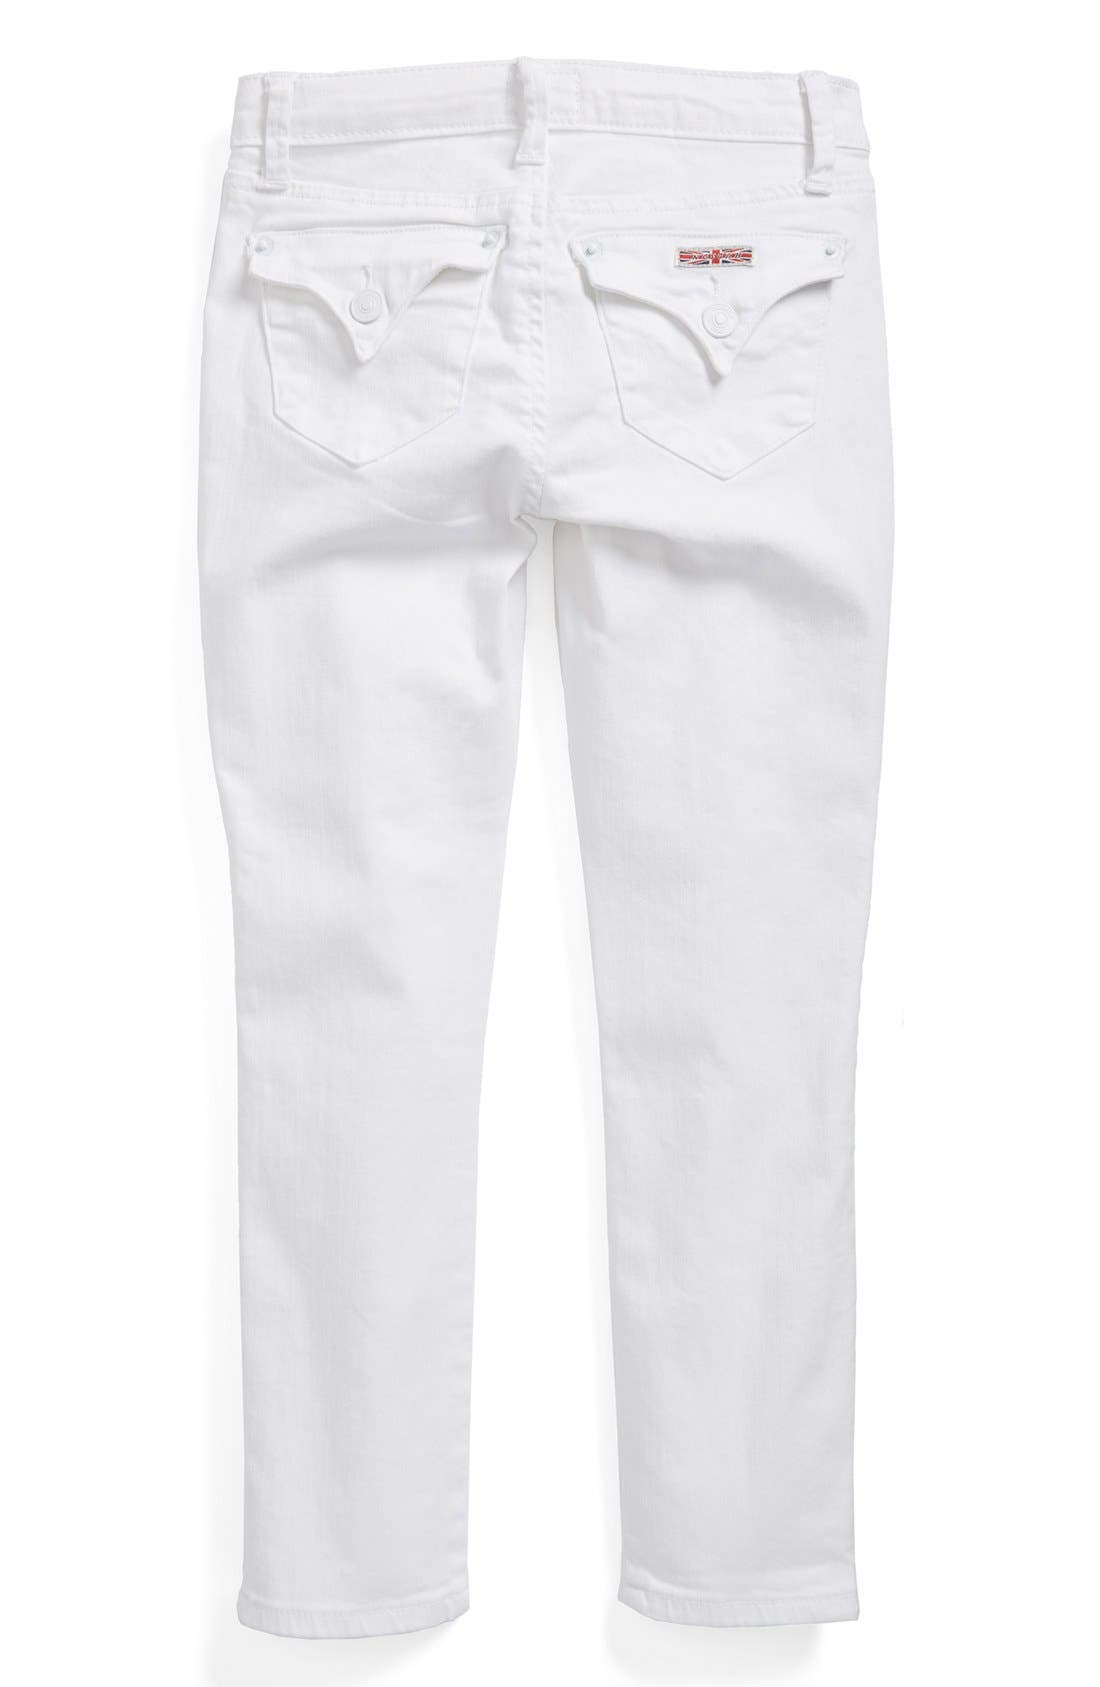 Alternate Image 1 Selected - Hudson Kids 'Collin' Skinny Jeans (Toddler Girls & Little Girls)